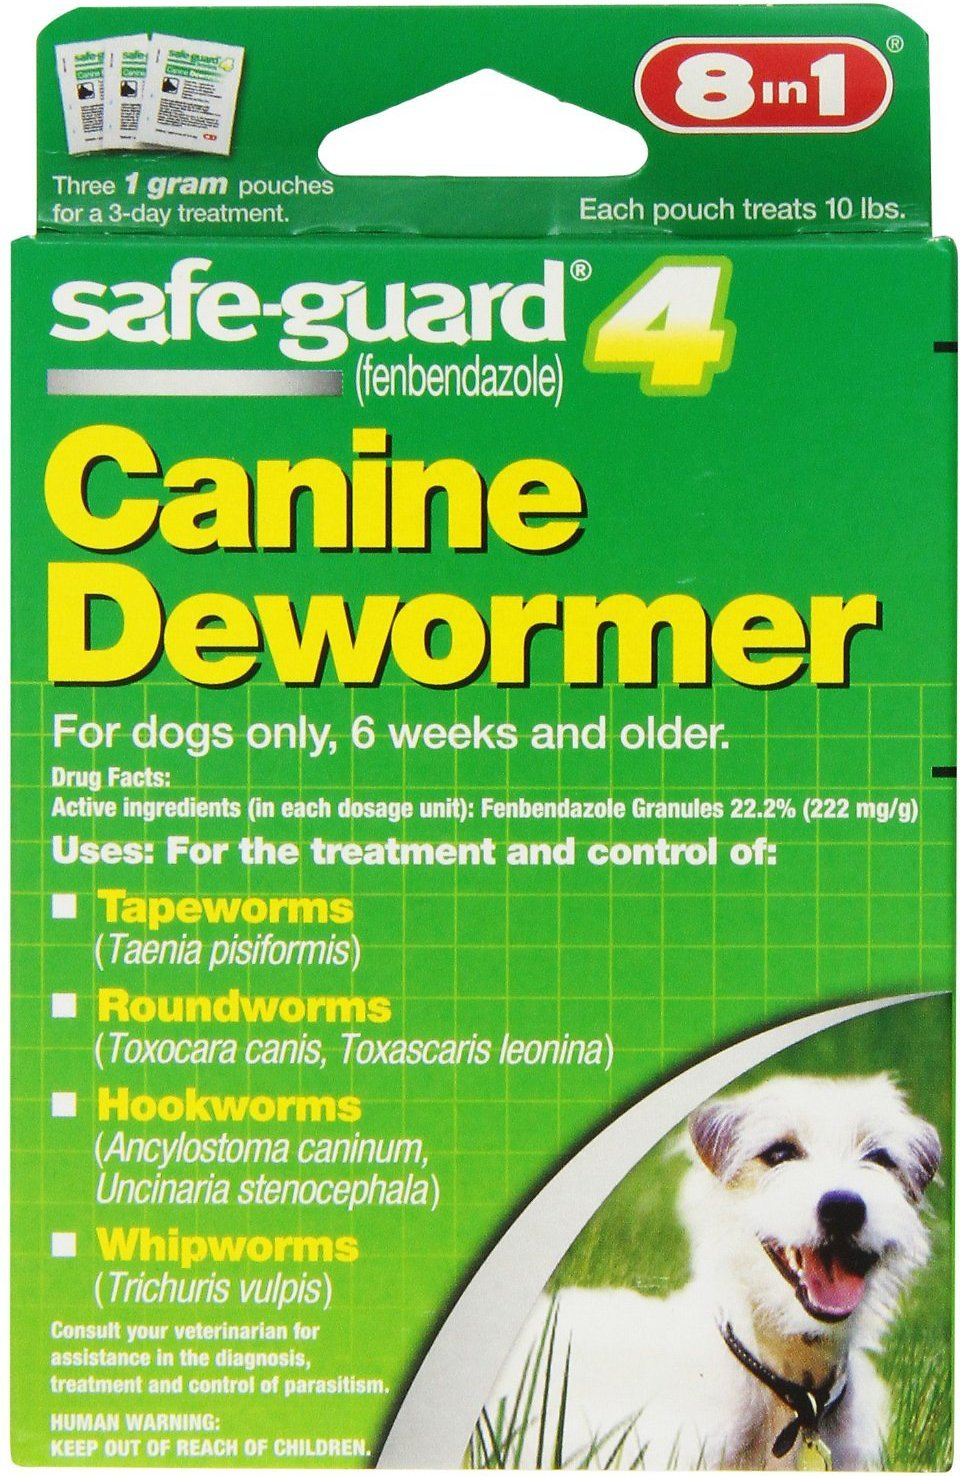 Guard 4 Canine 8in1 Safe Dewormer for Small Dogs, 3 day treatment by Guard 4 Canine (Image #1)